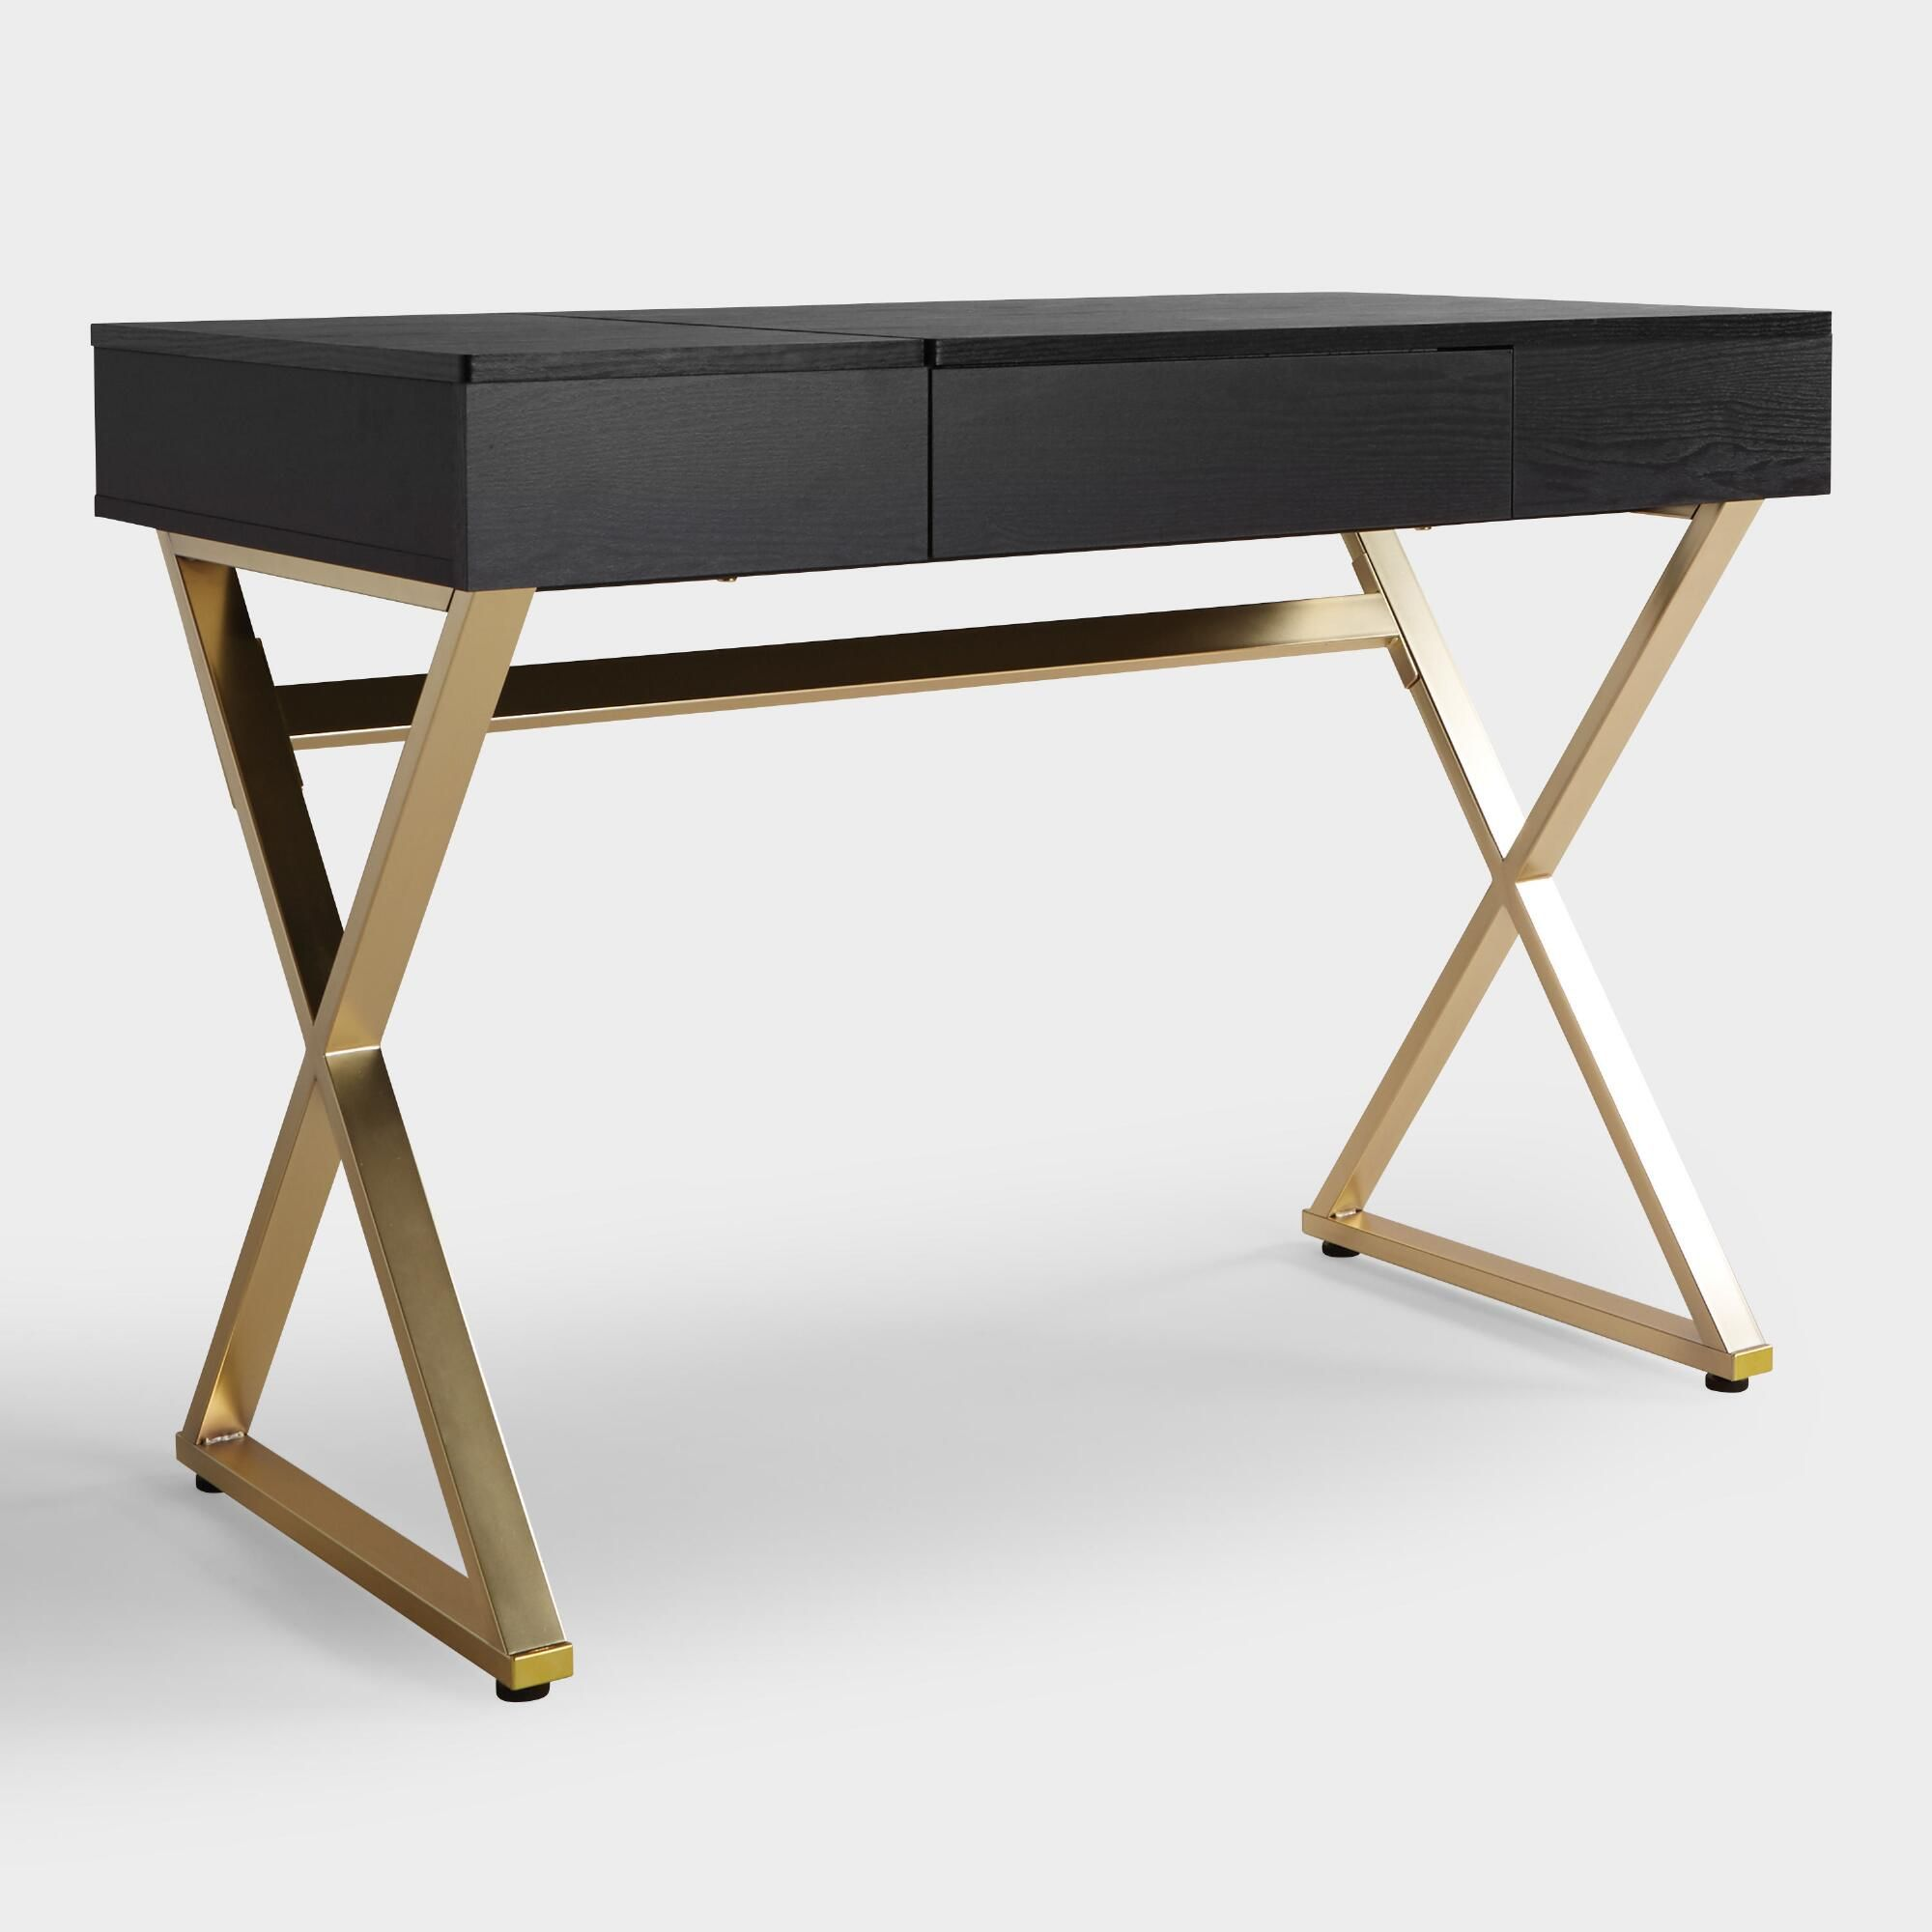 Pin By Rahayu12 On Xclusive Office Decoration Vanity Desk Wood